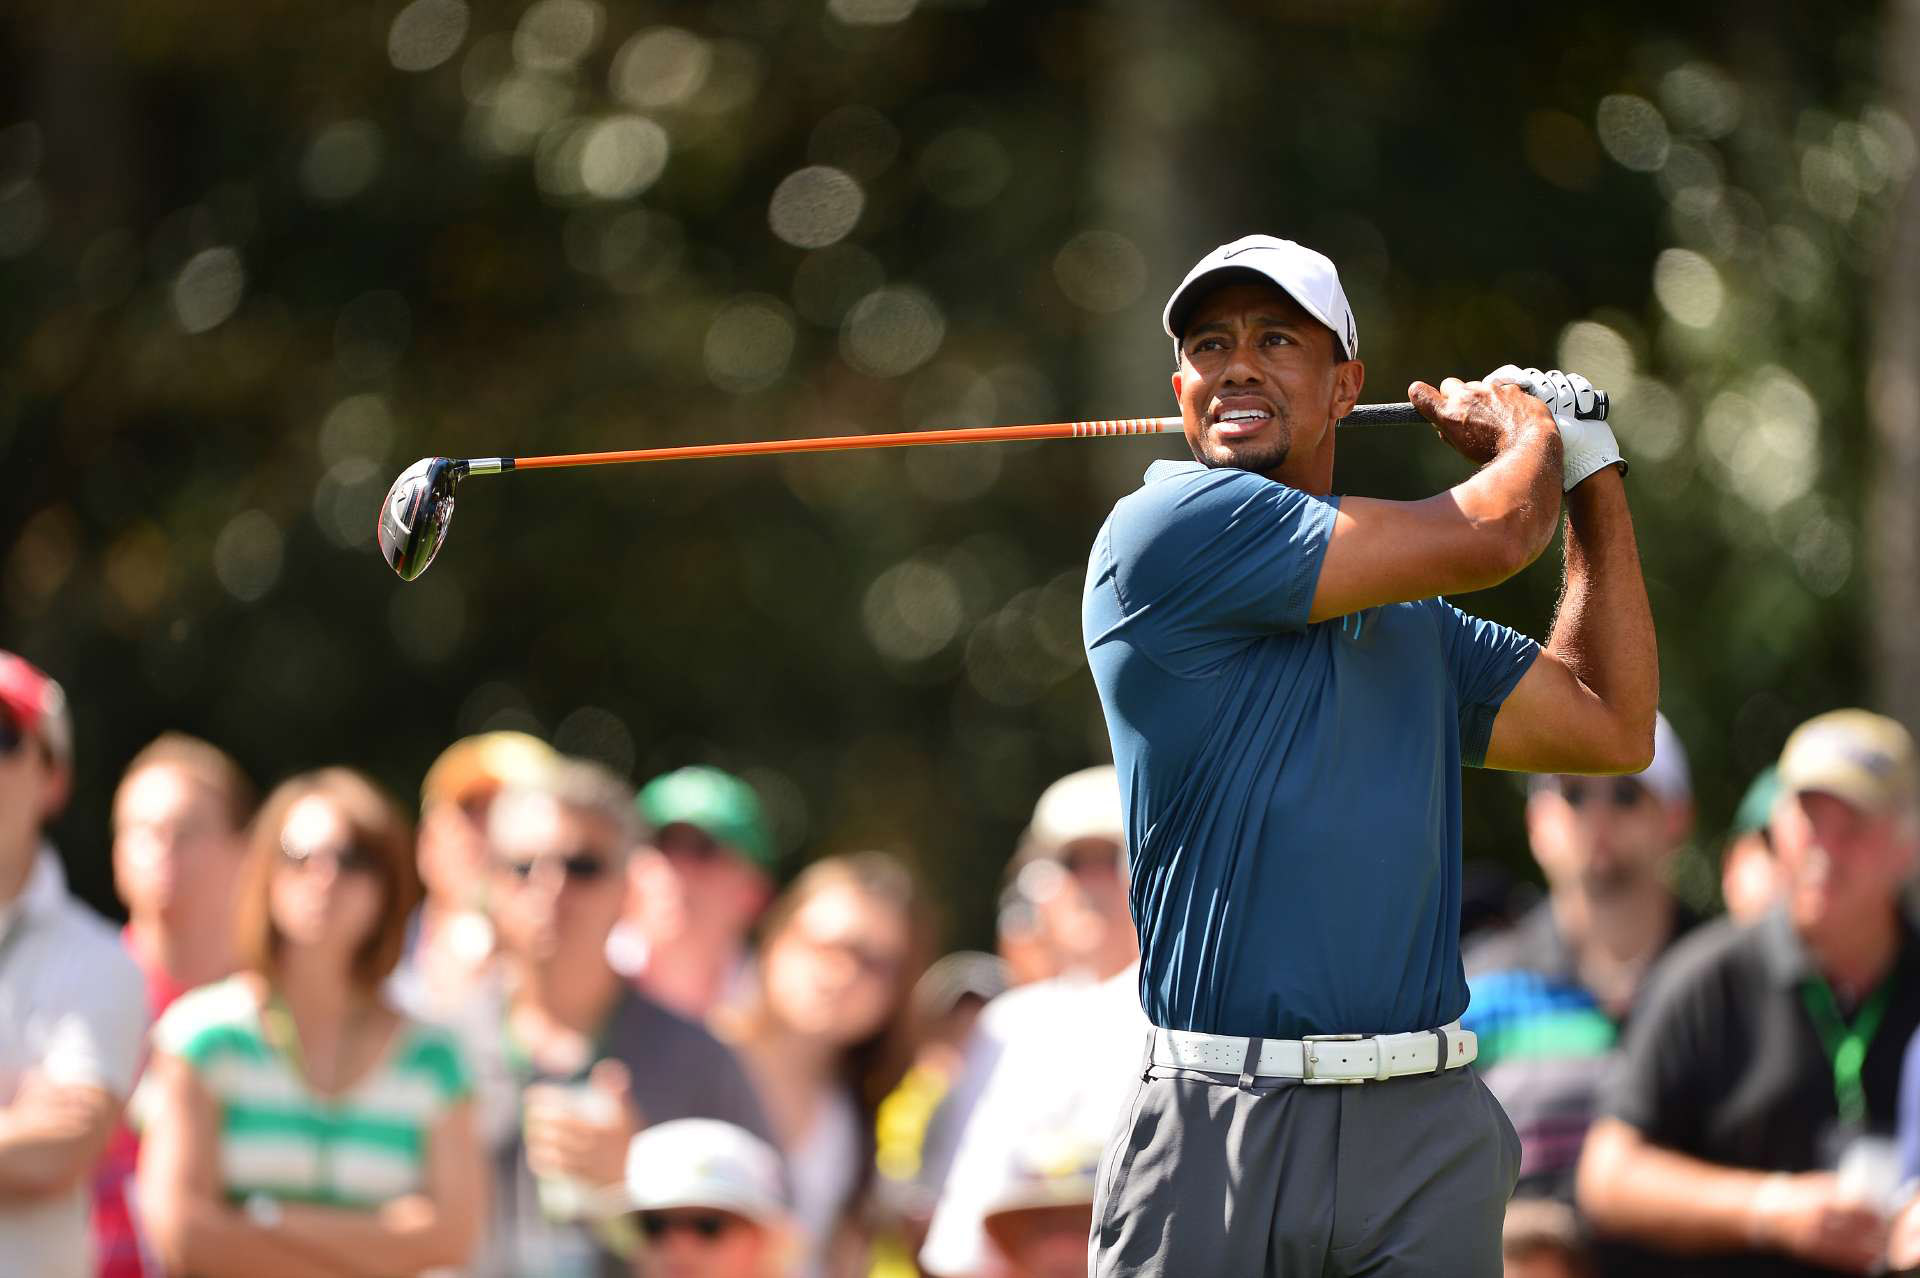 Tiger Woods during the third round of the 2013 Masters. He missed the 2014 Masters after back surgery.